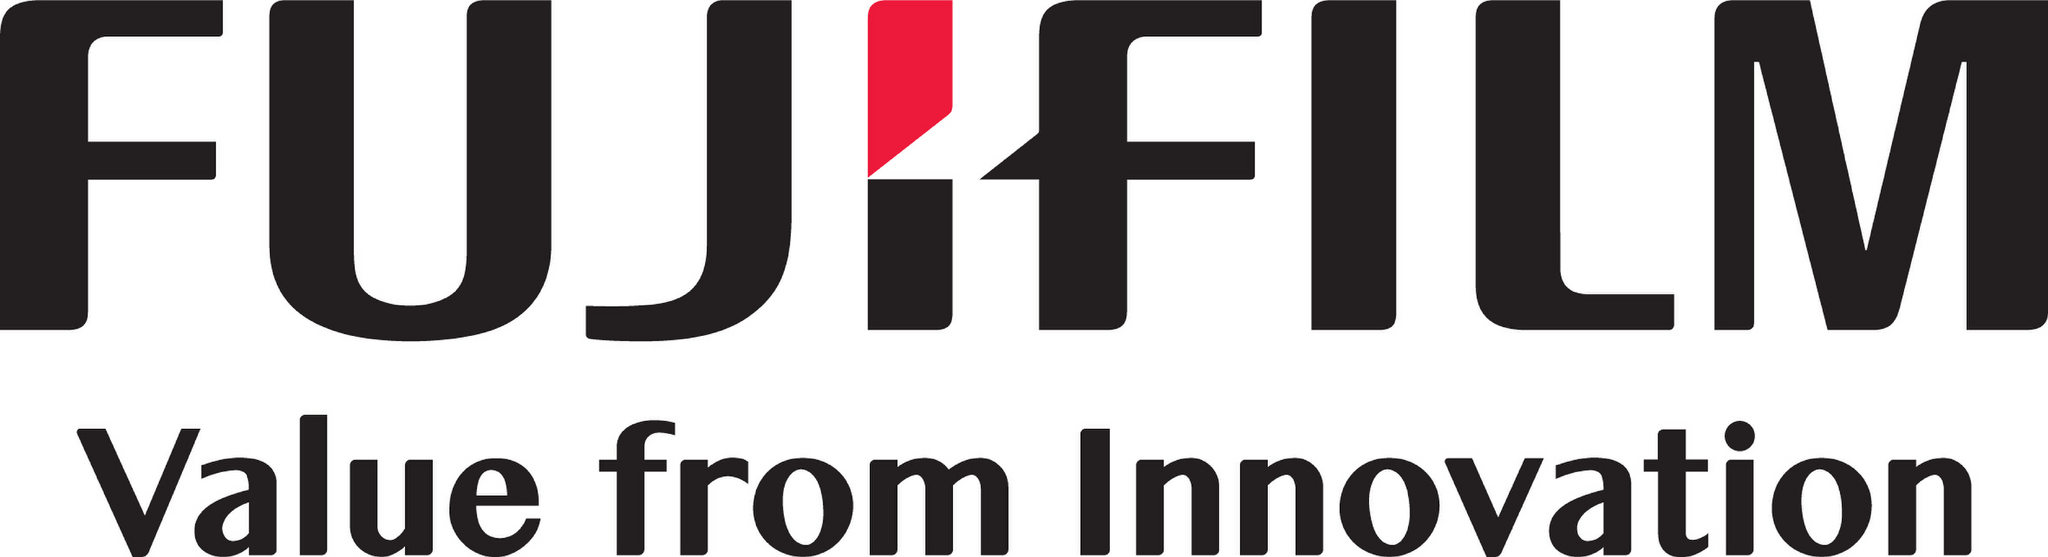 Fujifilm UK Ltd